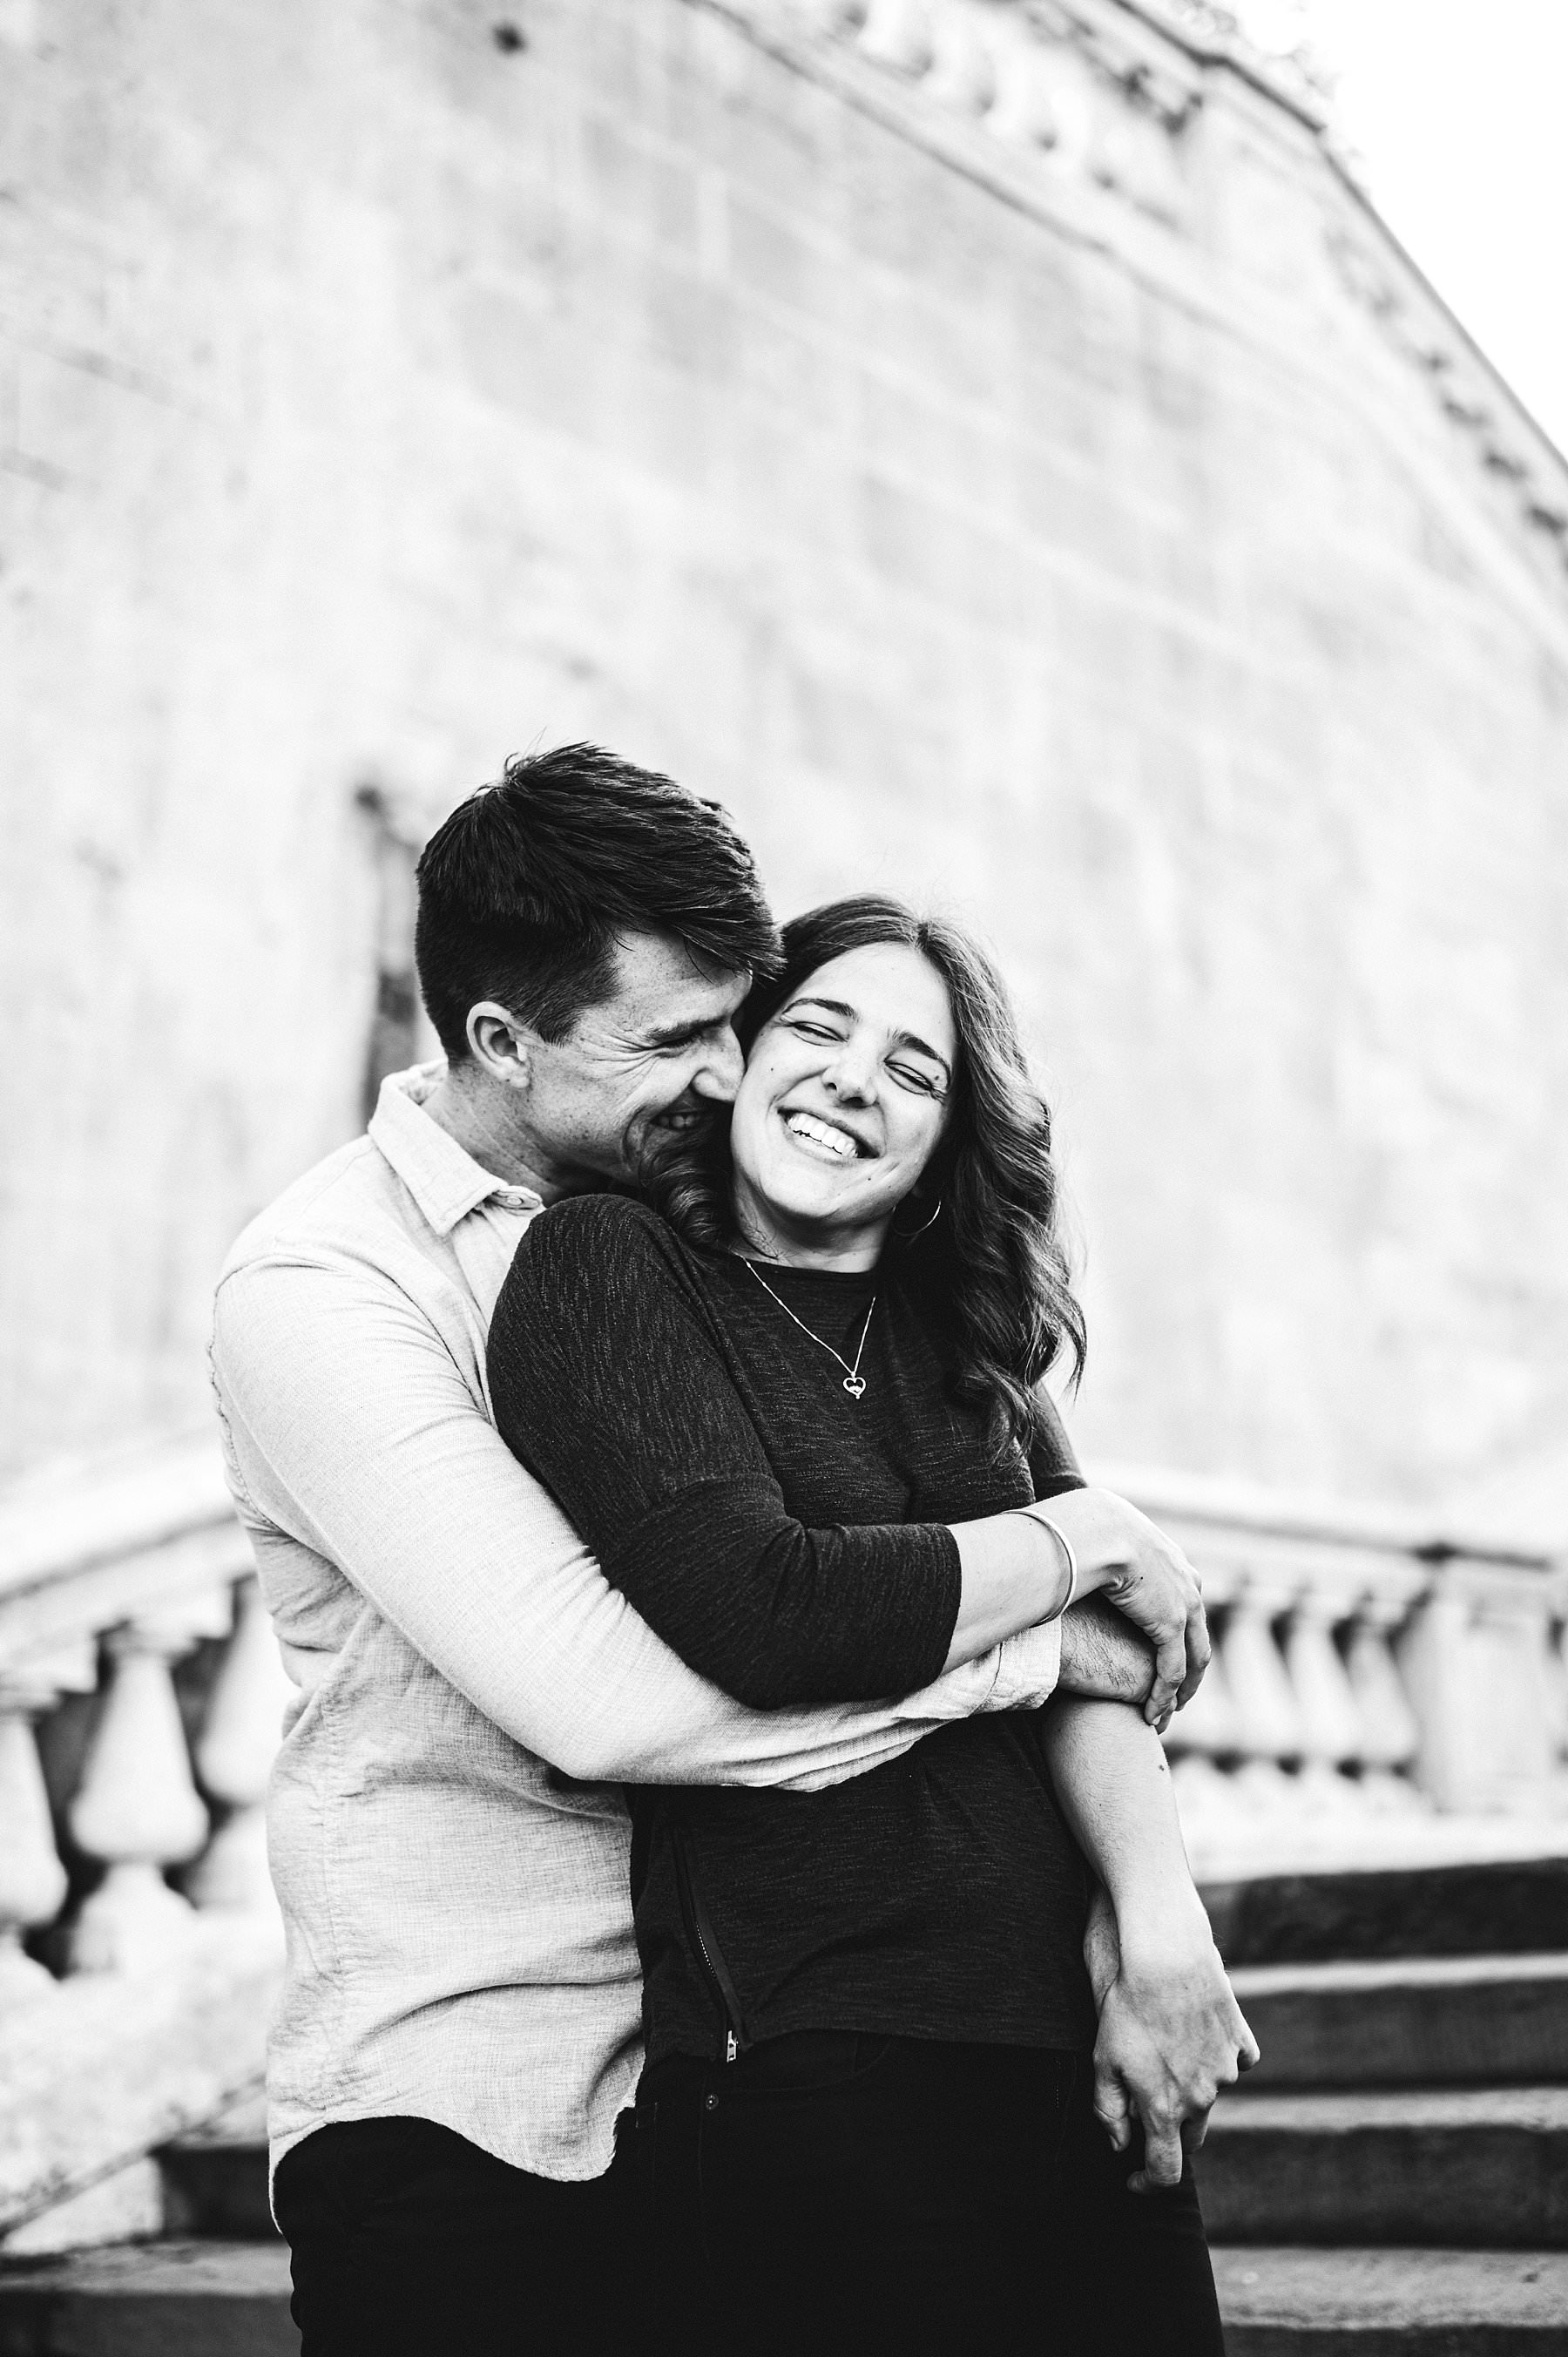 Claudia and Andrew's romantic engagement photos in Florence. Exciting and romantic spontaneous and dreamy photographs filled with love and set among the architectural masterpieces of the city